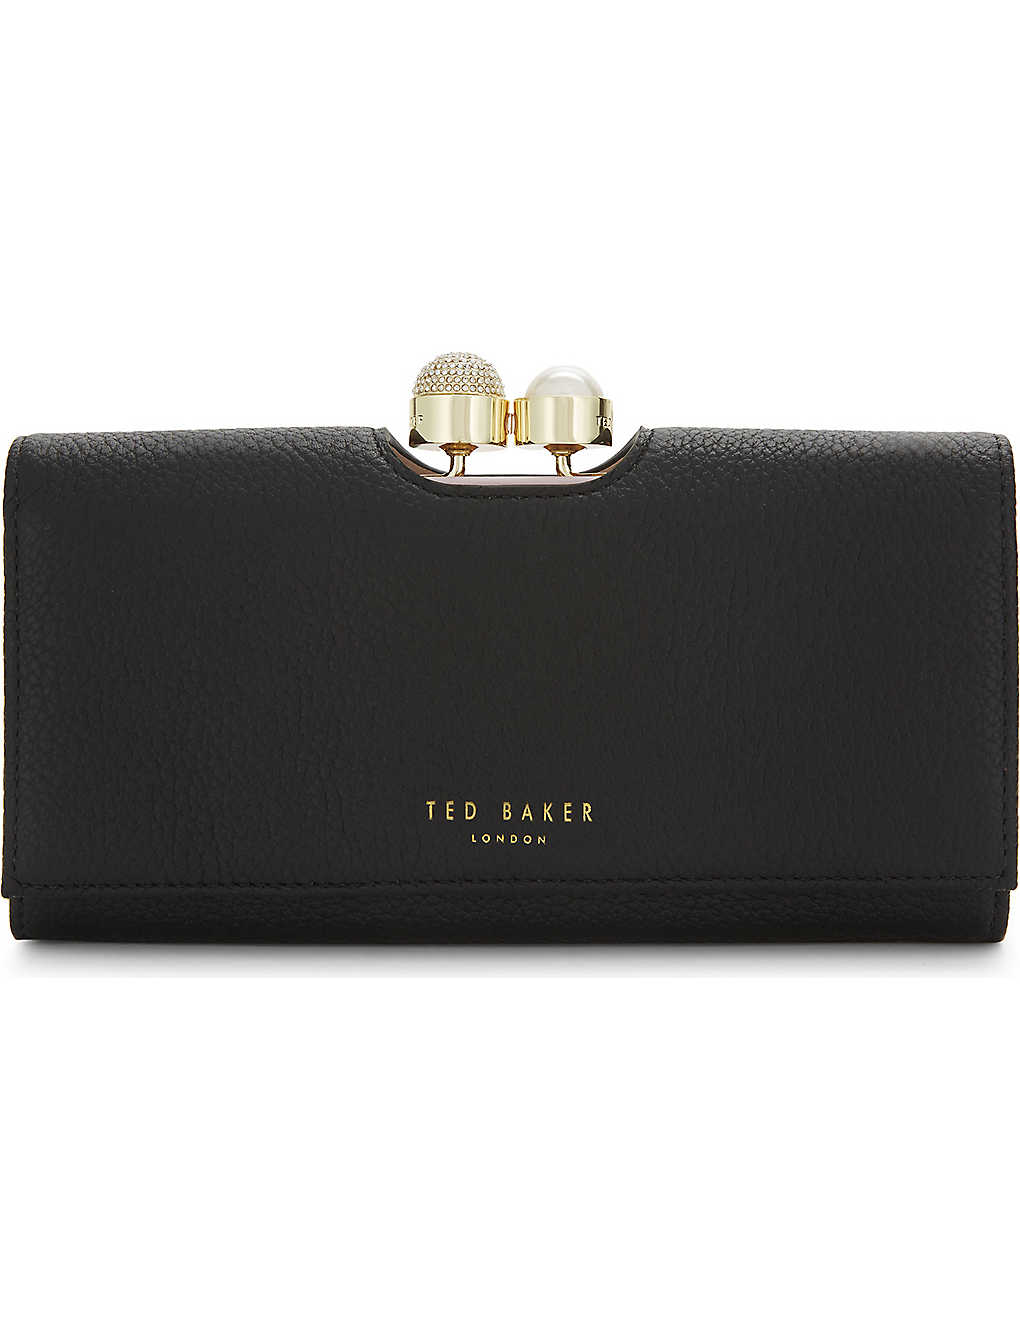 62c2842e75ec92 TED BAKER - Marta crystal and pearl leather matinee purse ...